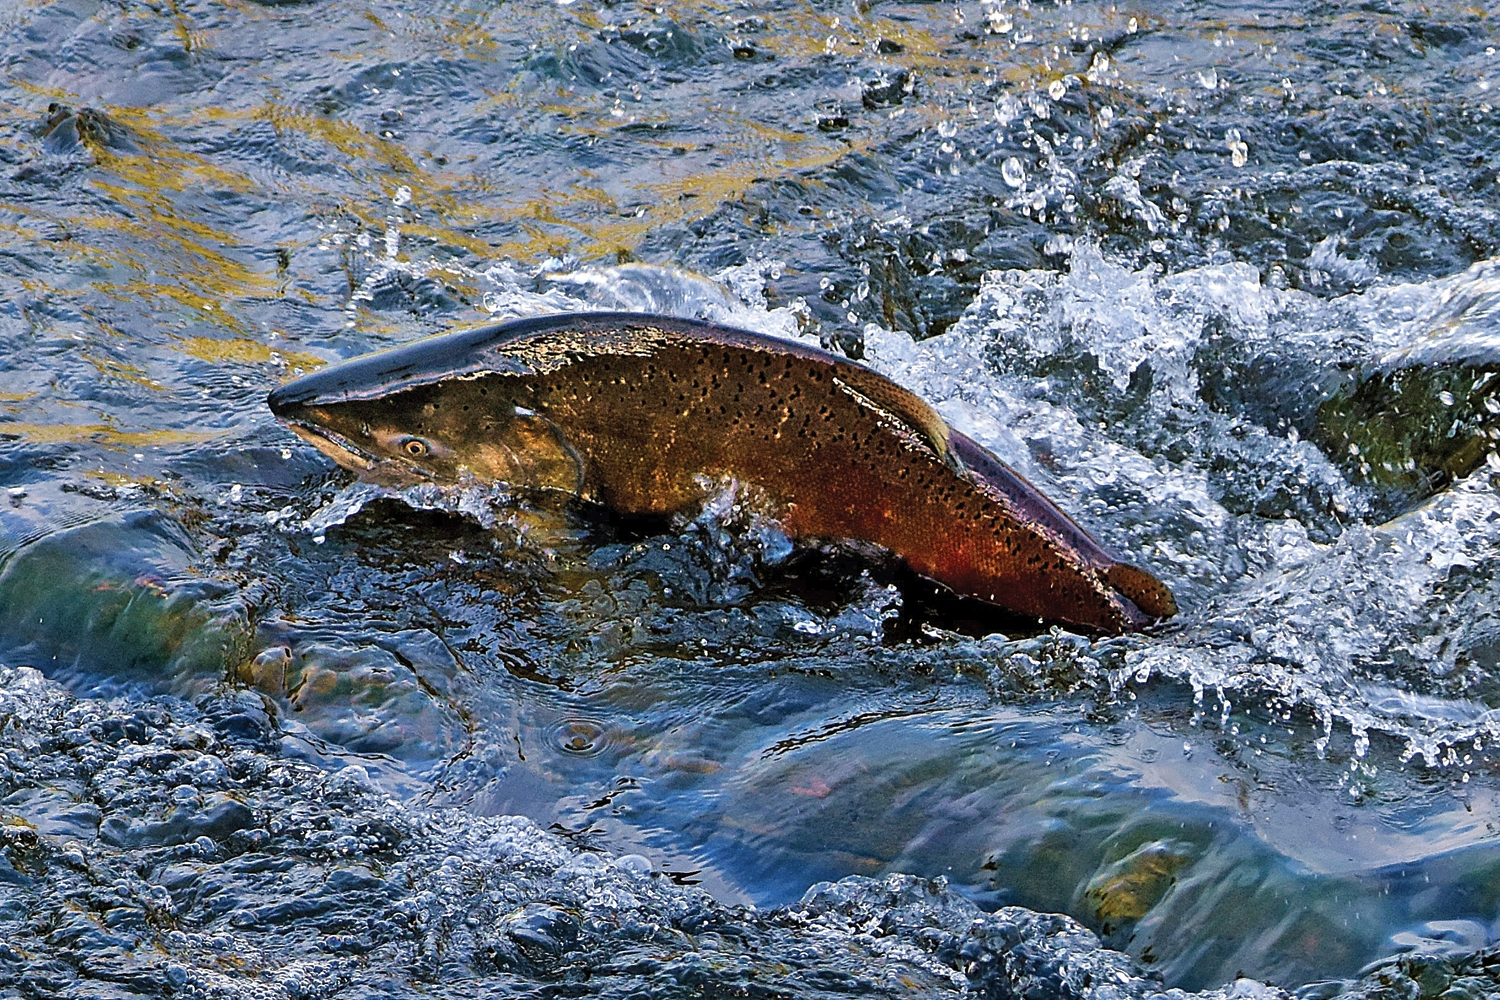 A CHINOOK SALMON swims up the South Fork of the Eel River at Piercy last November. (Talia Rose)